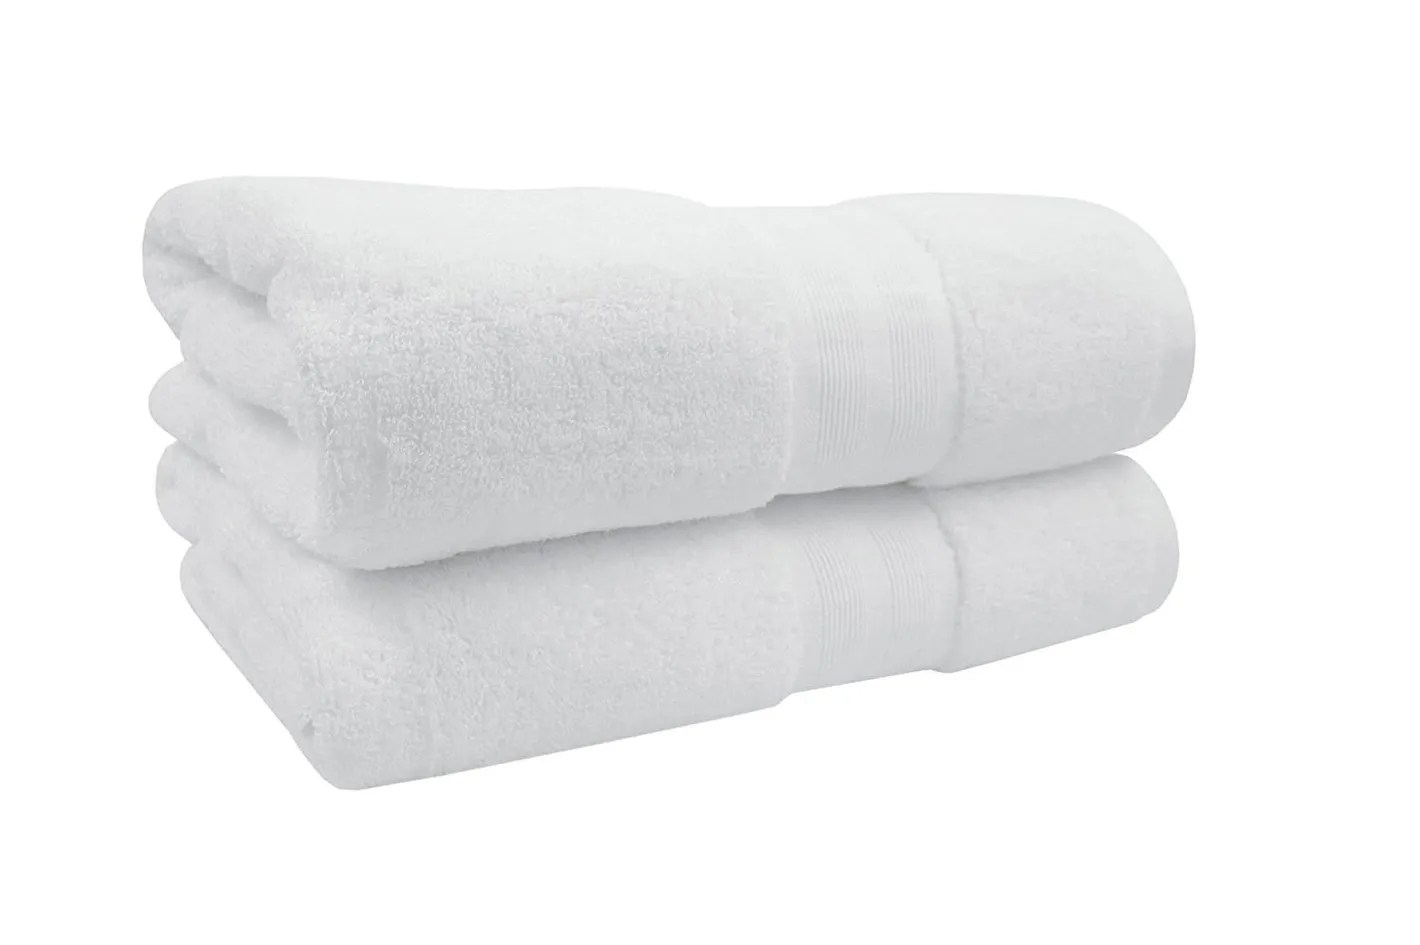 10 best bath towels — luxury, decorative & affordable towels